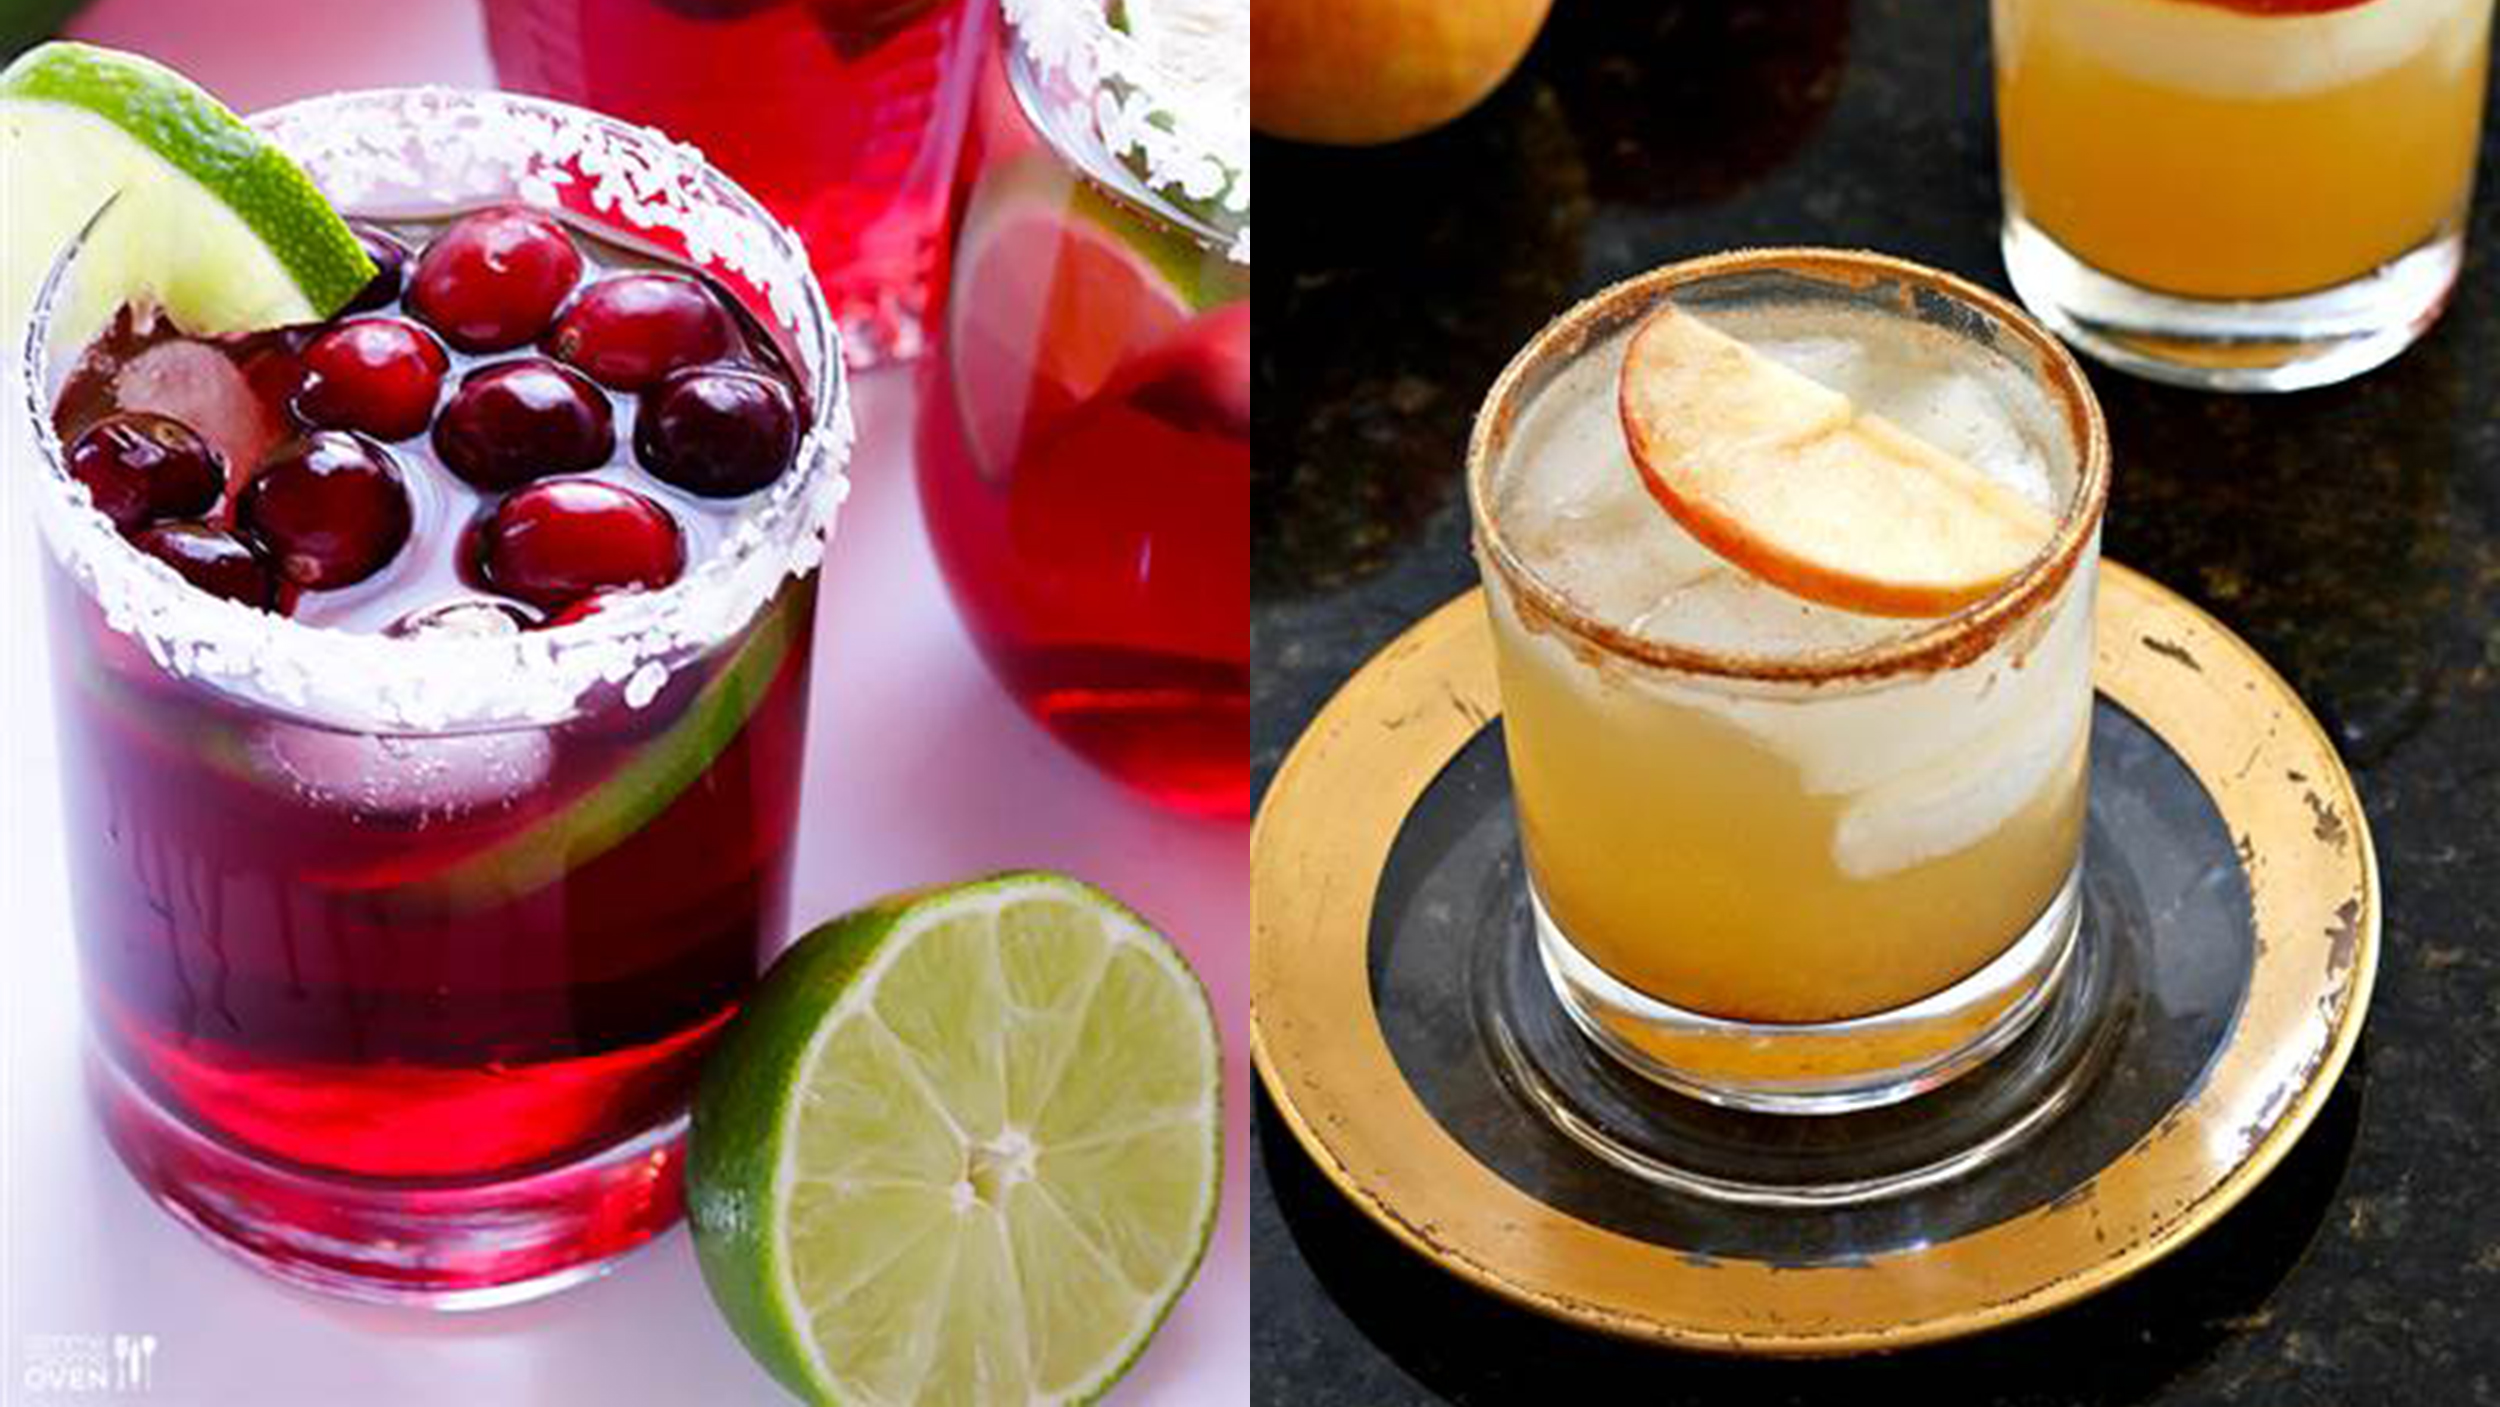 11 easy Thanksgiving cocktail recipes that are delicious and beautiful